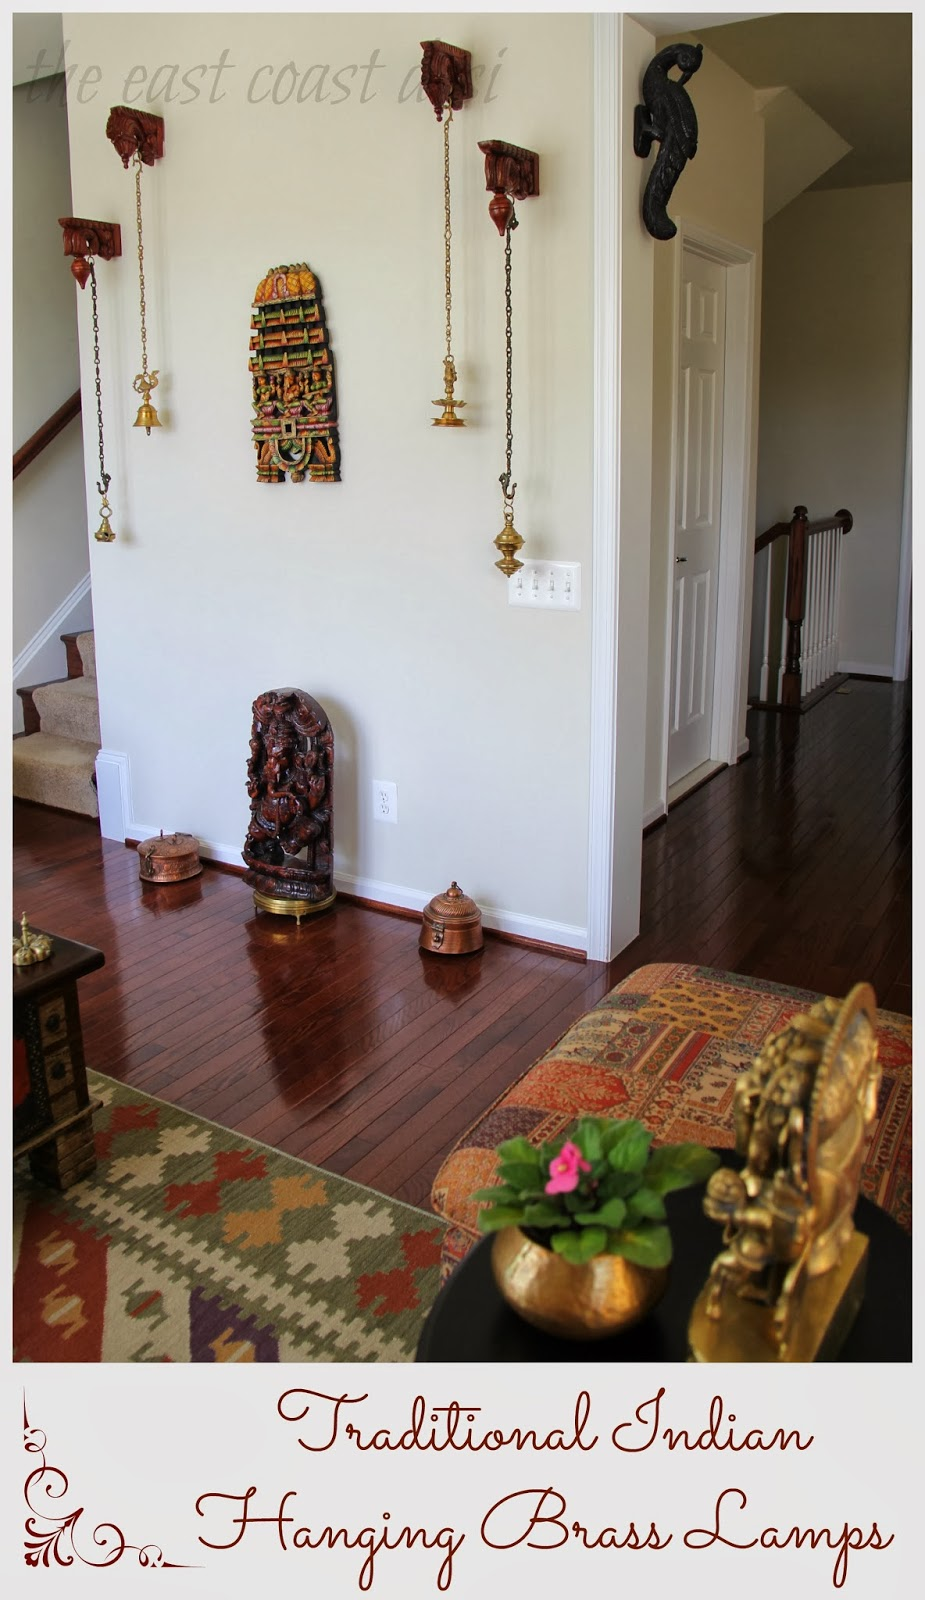 The east coast desi my living room a reflection of india for Traditional home decor